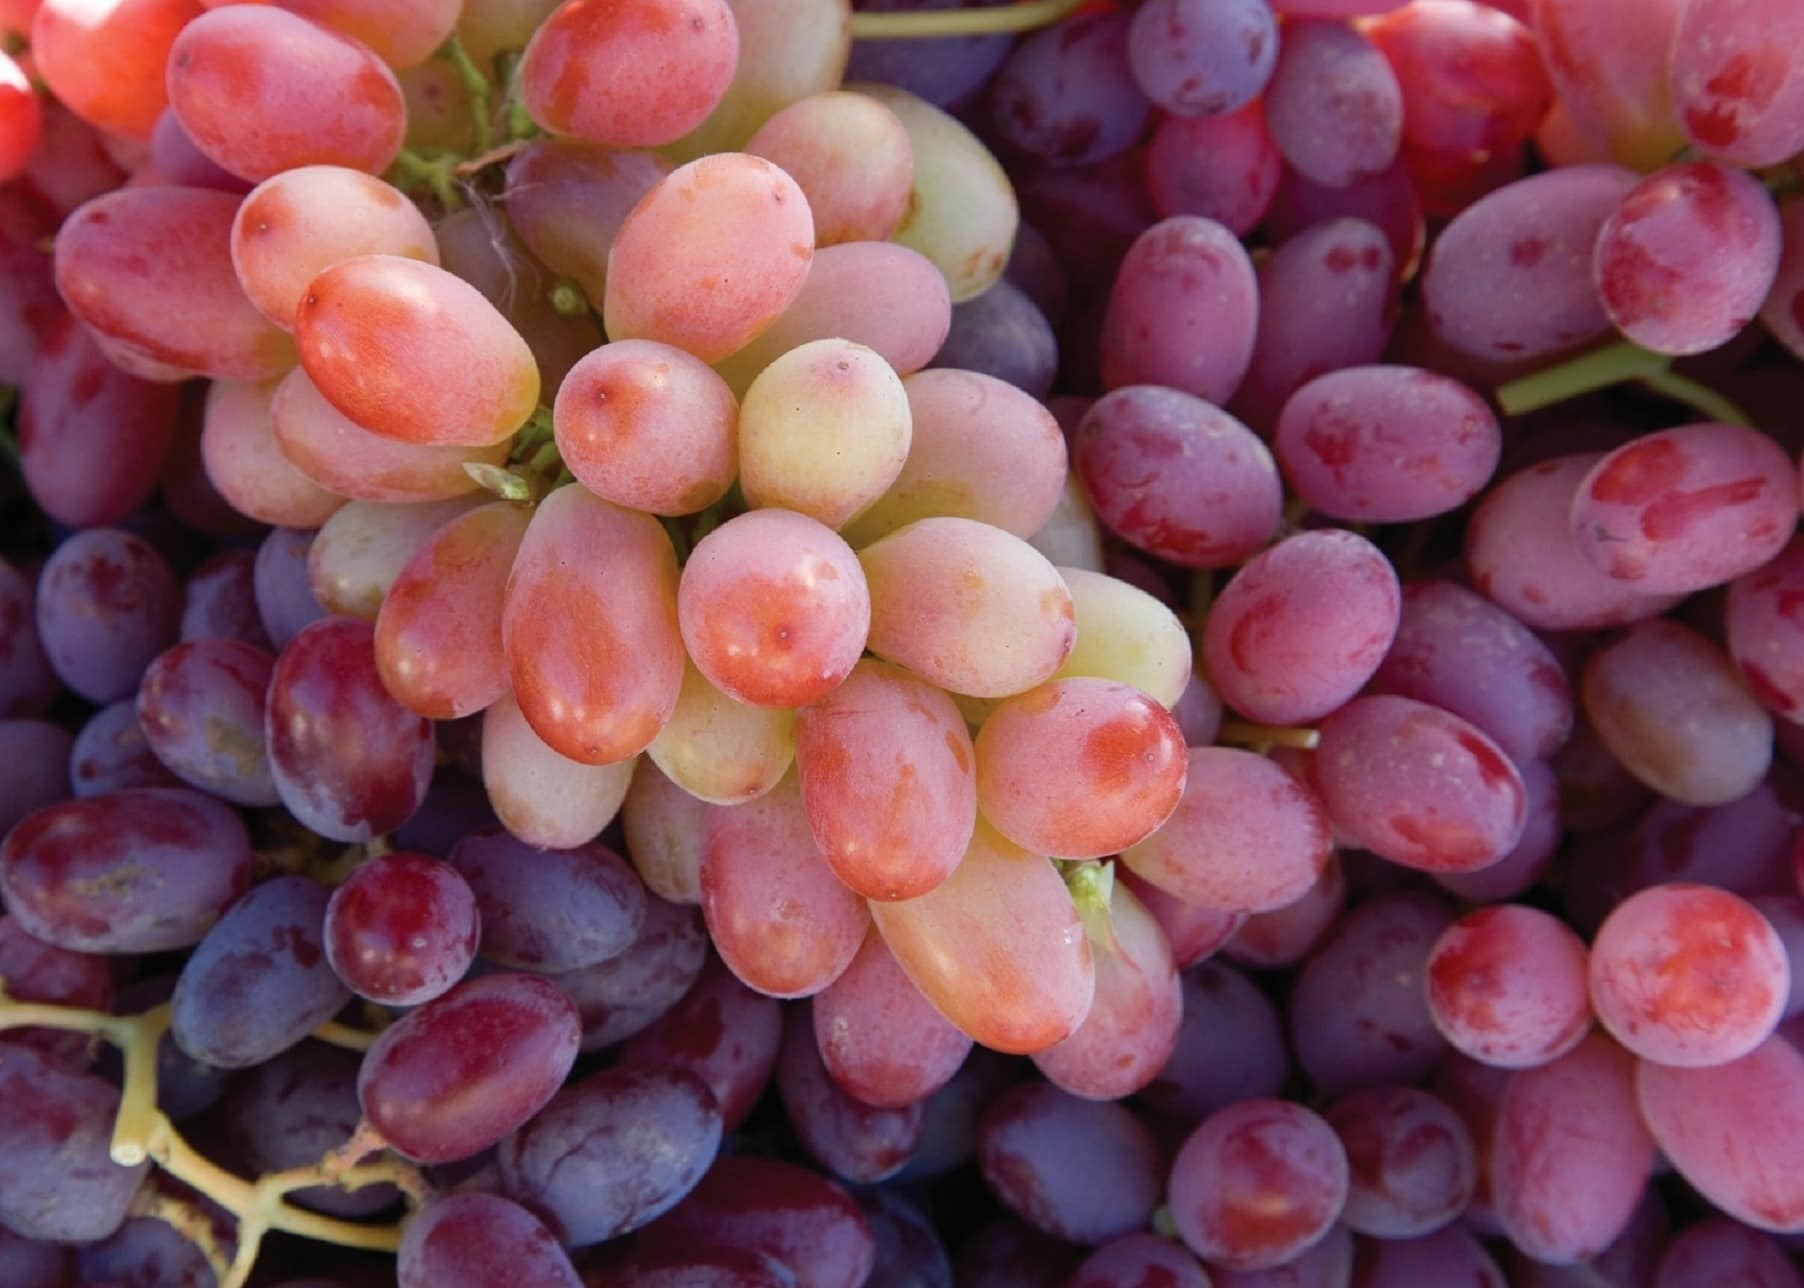 Free picture: viticulture, grape, fruit, food, grapes, market, berry, nutrition